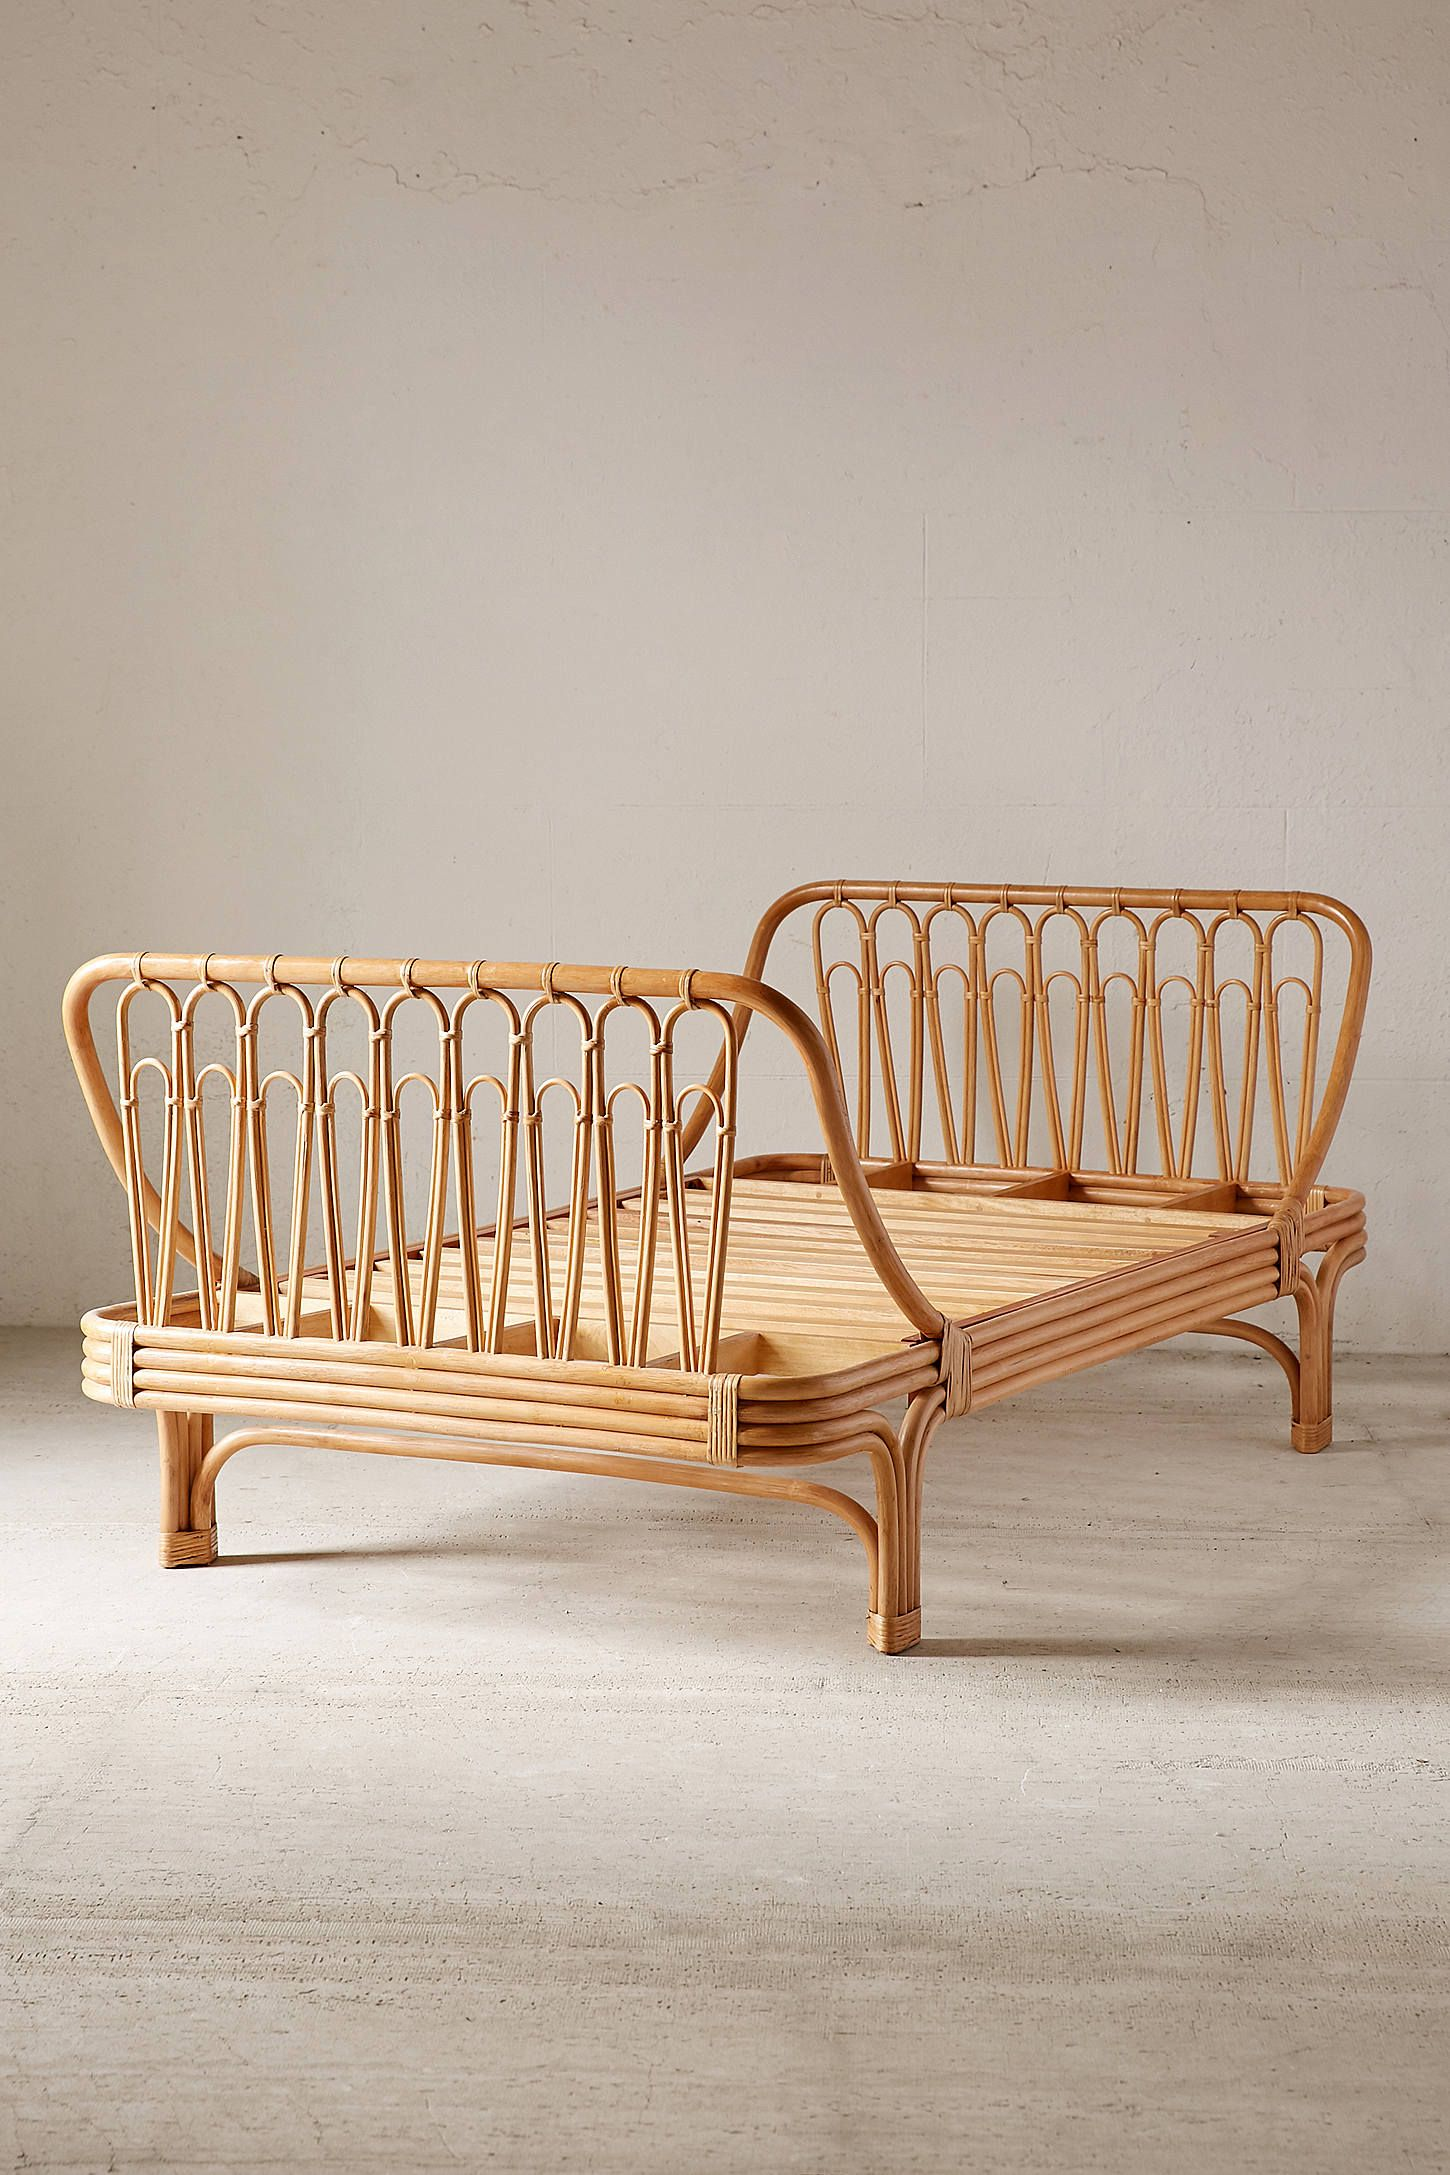 Canoga Rattan Bed in 2020 Rattan bed frame, Bamboo